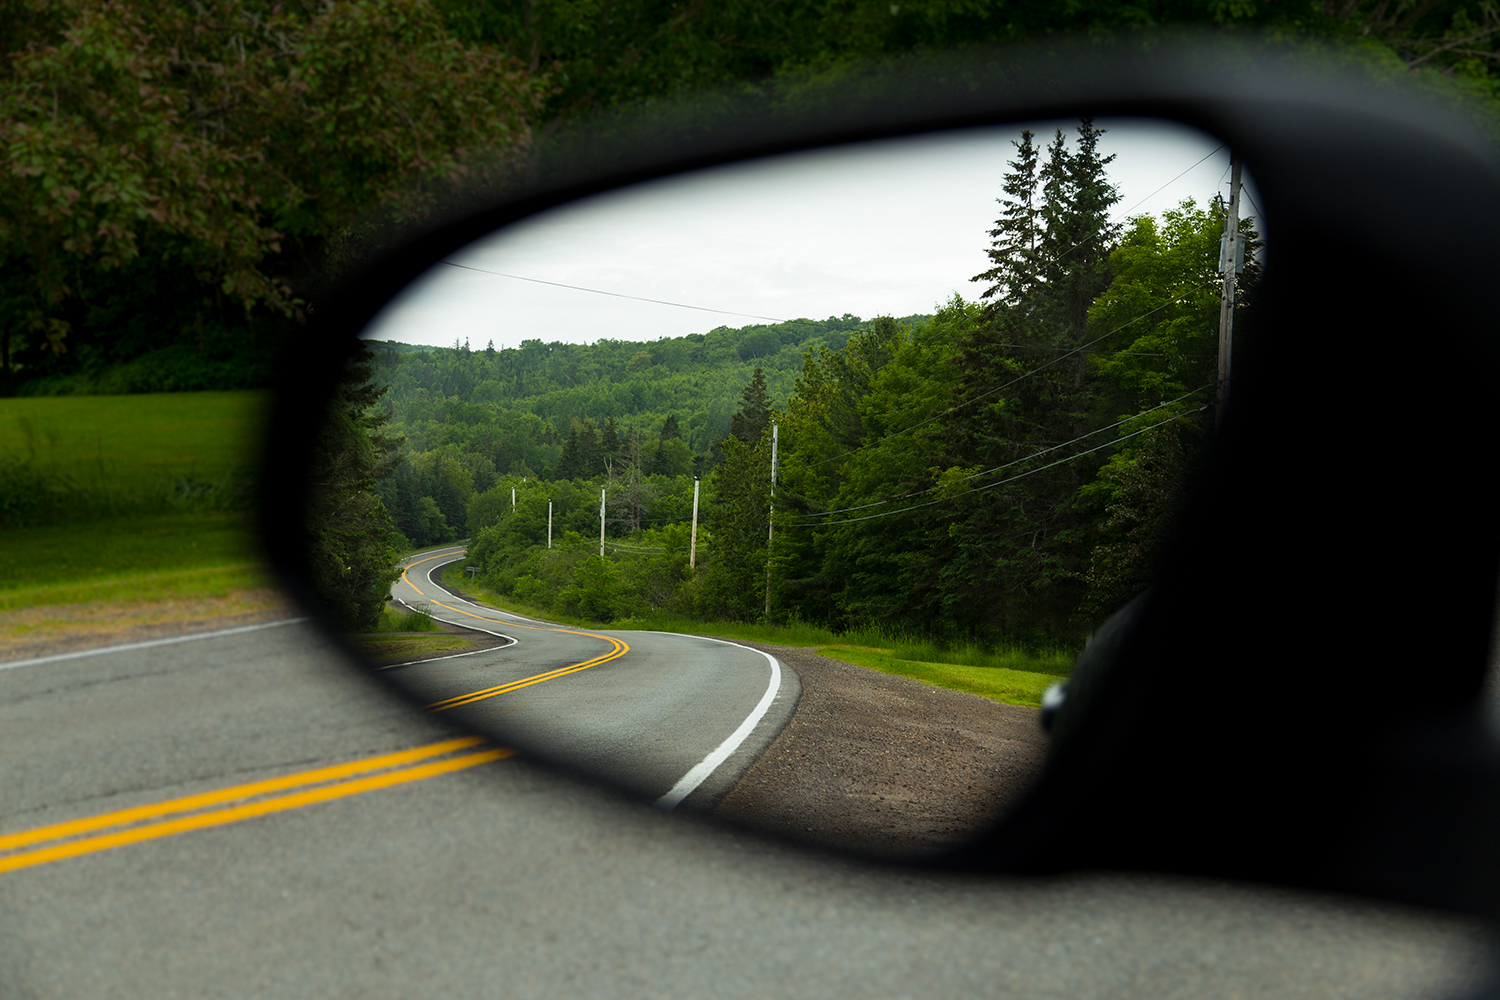 Year in review: Top 3 Insights from CARFAX Canada Driving Insights